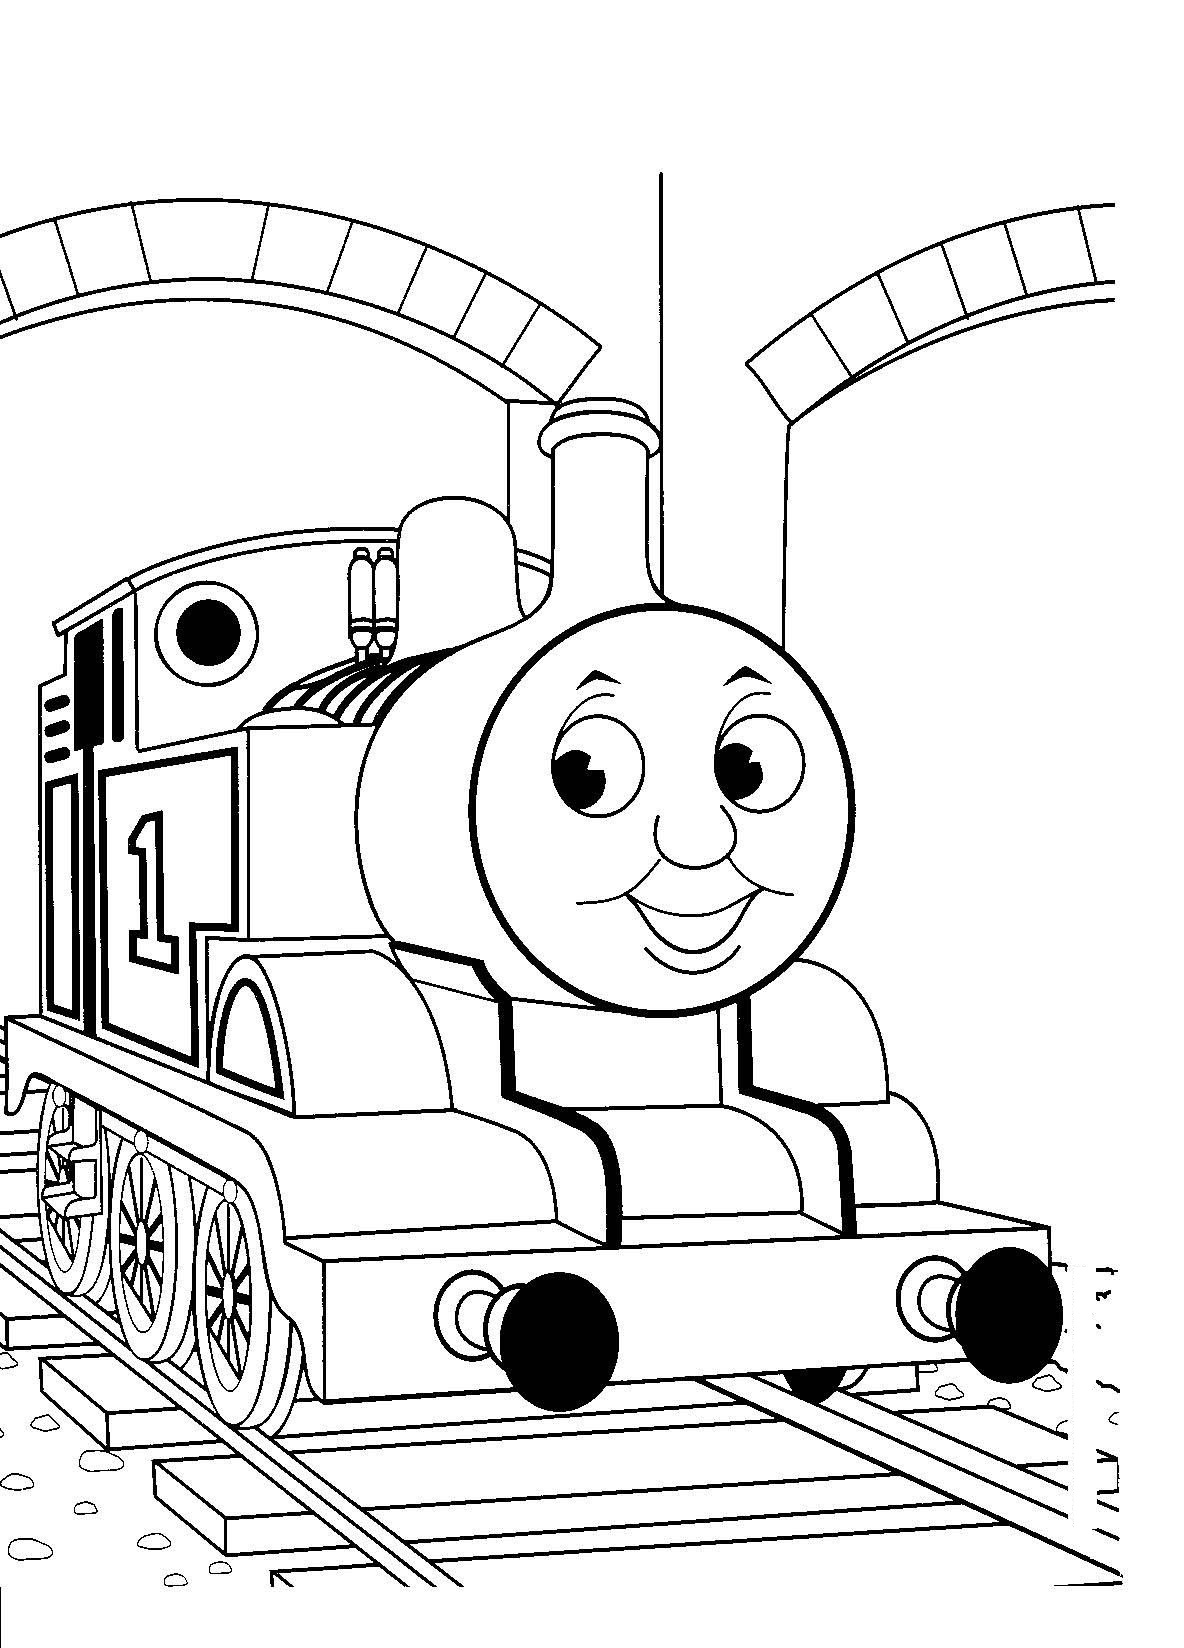 Train coloring pages for toddlers - Free Printable Thomas The Train Coloring Pages